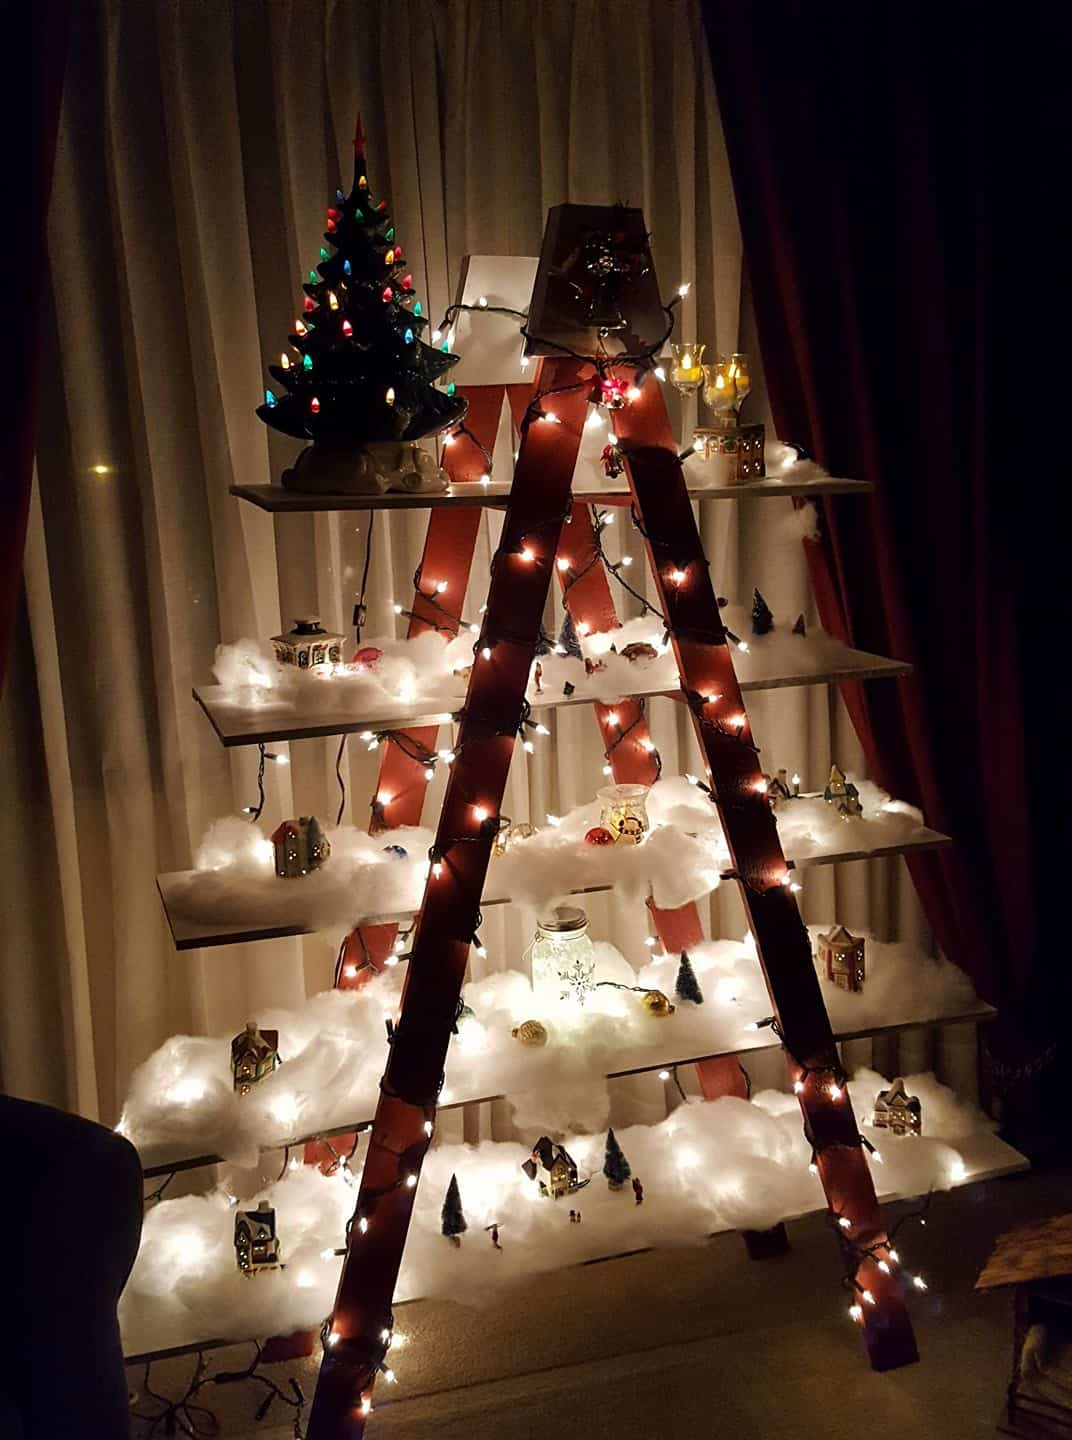 Cool Christmas Trees.Totally Cool Christmas Tree Decorating Ideas That Will Blow